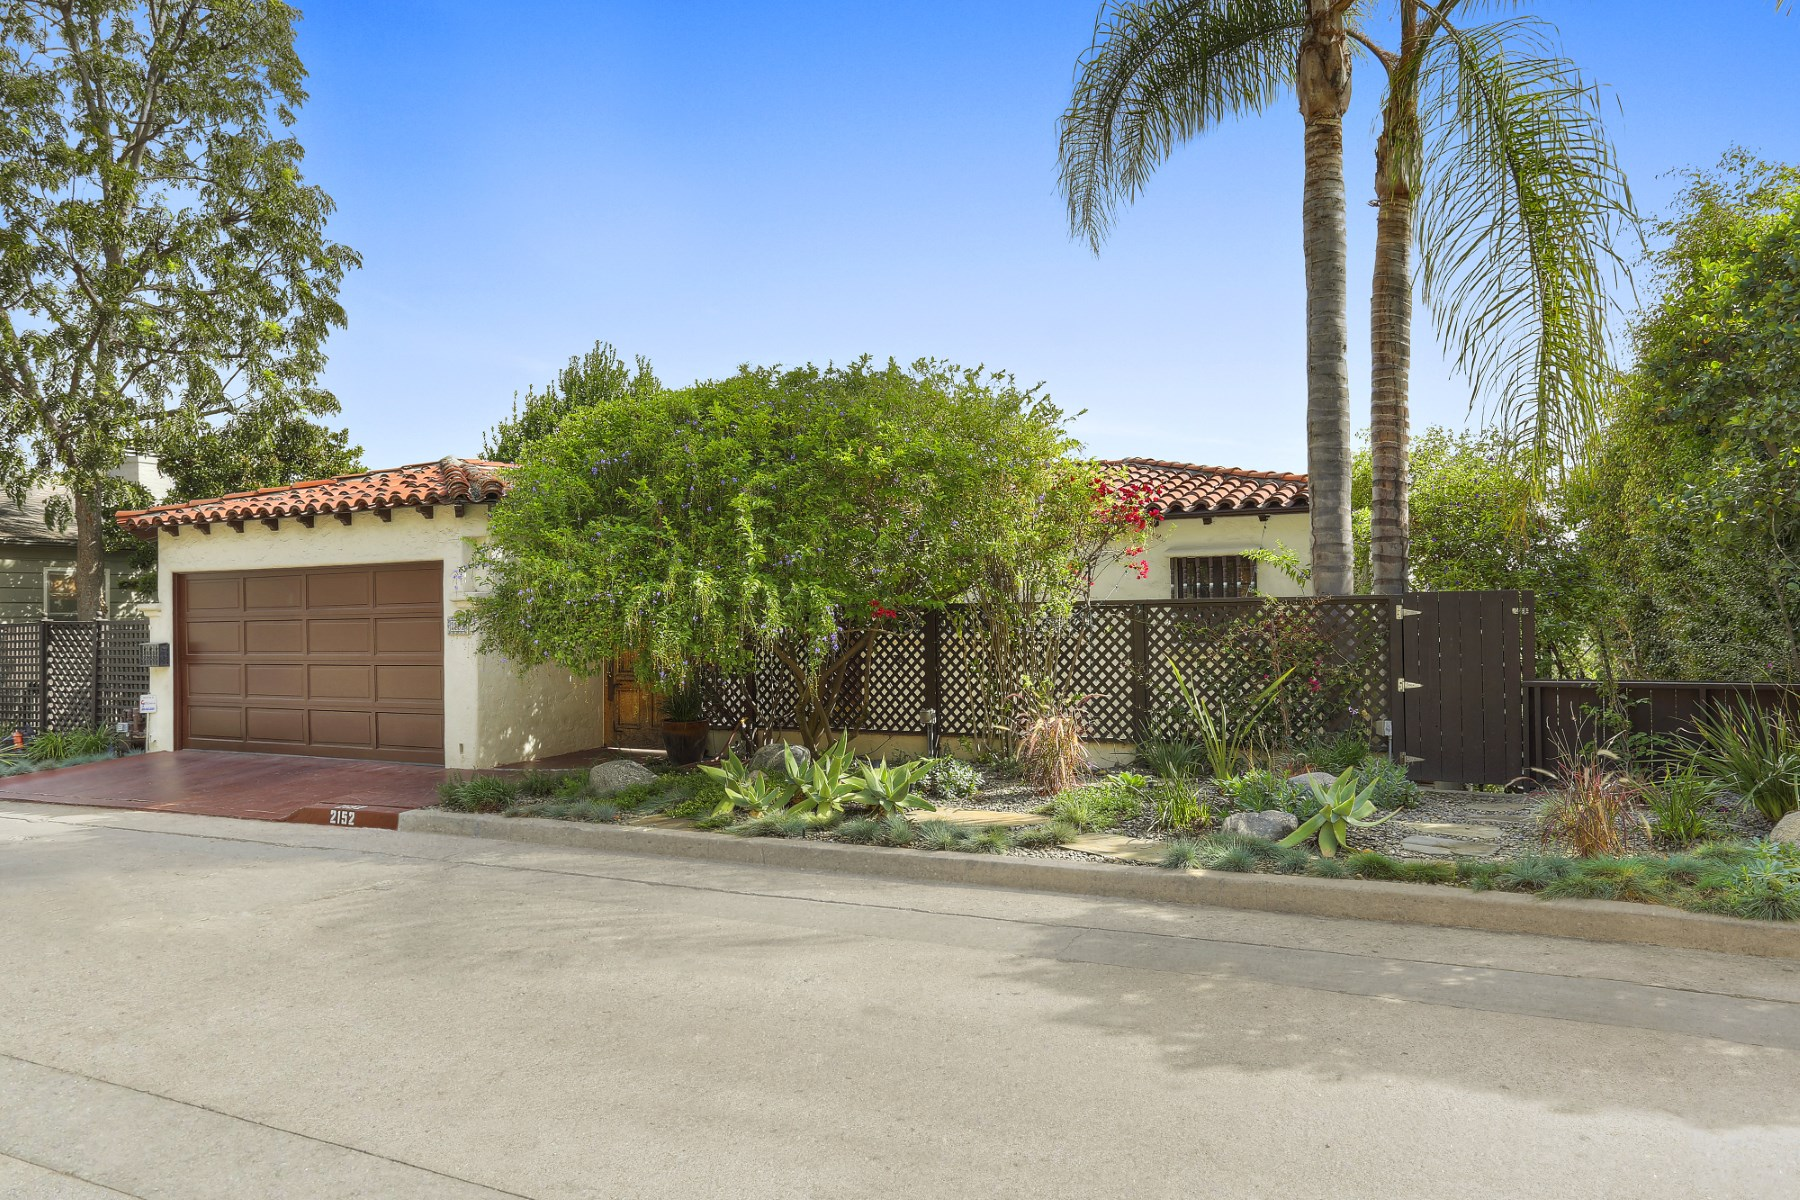 Single Family Home for Sale at 2152 Kenilworth Avenue Silver Lake, Los Angeles, California, 90039 United States